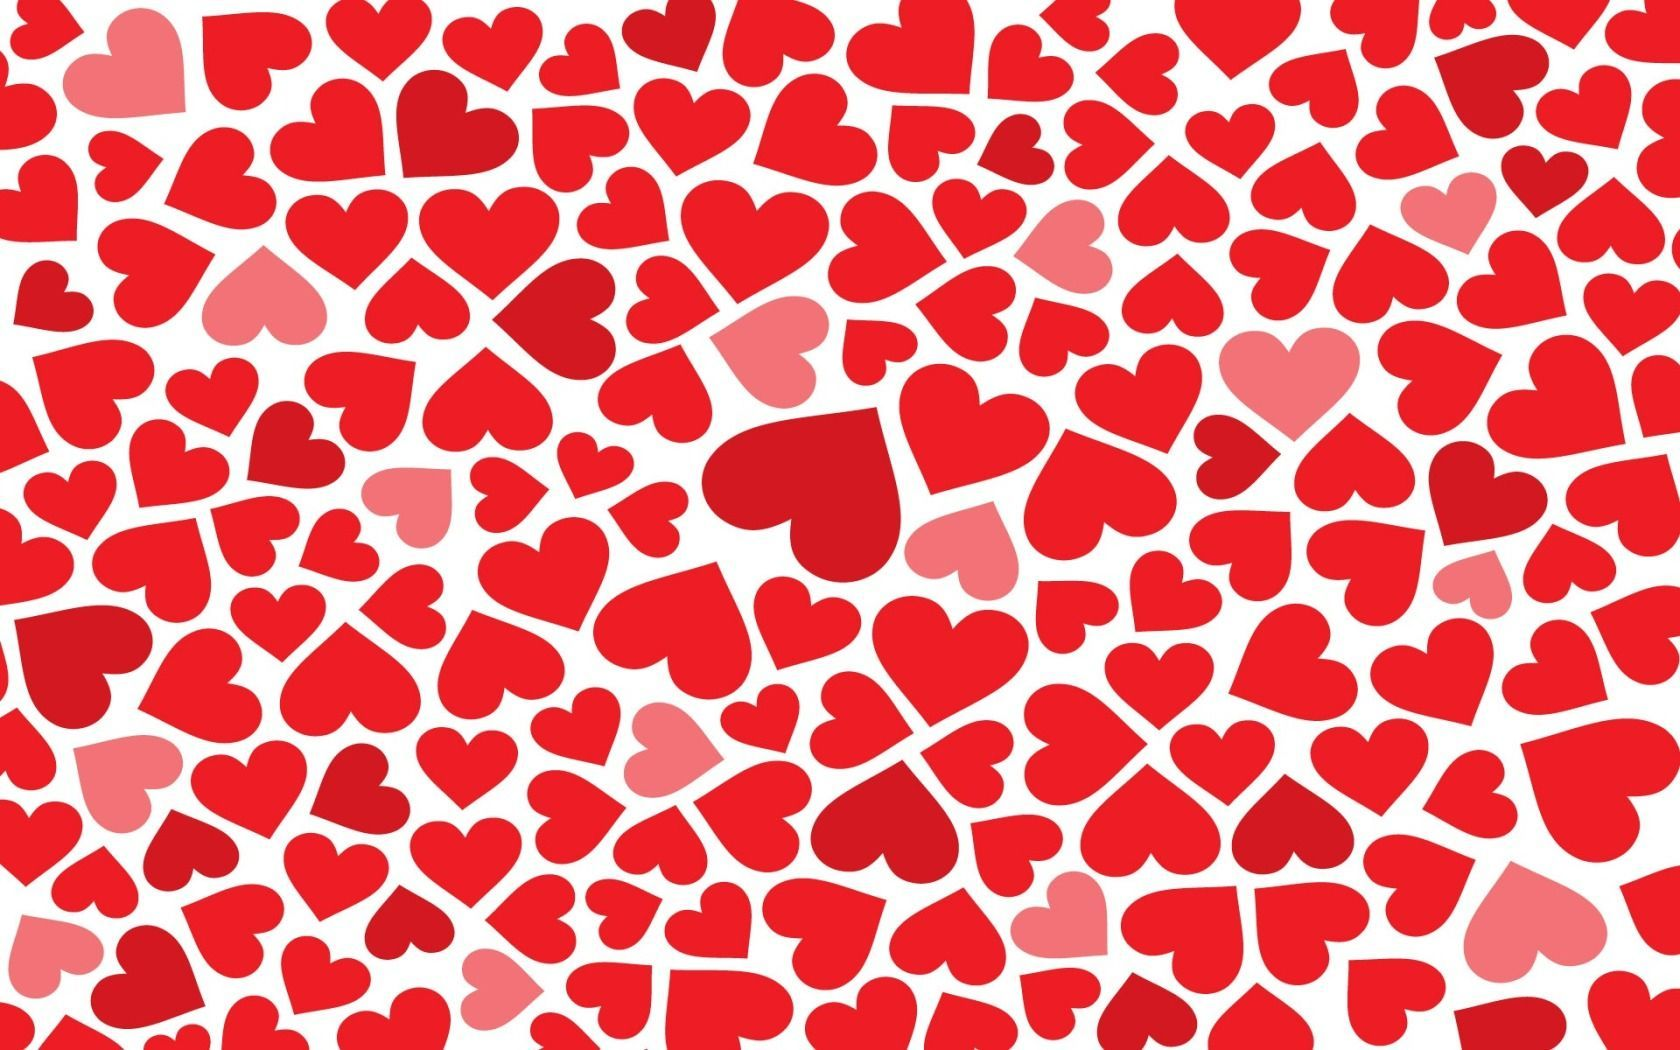 Animated Heart Red Hearts Wallpapers Fan Photo